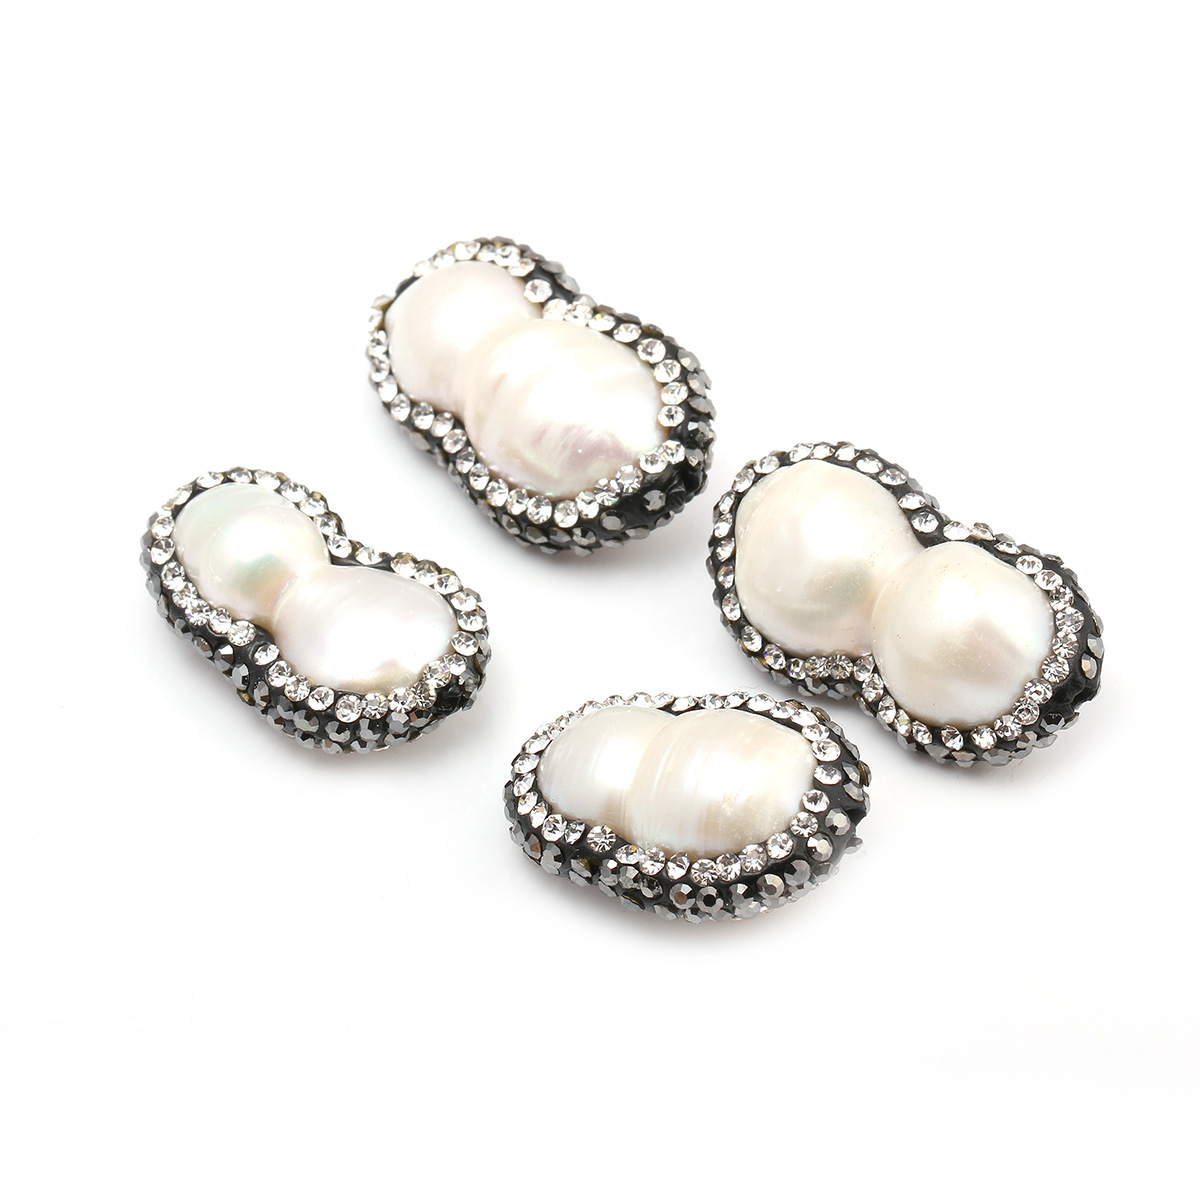 Wholesale Fashion Double Natural Pearl Pendants with Crystal Necklace Pendant for Jewelry Making DIY Bracelets 15x23mm